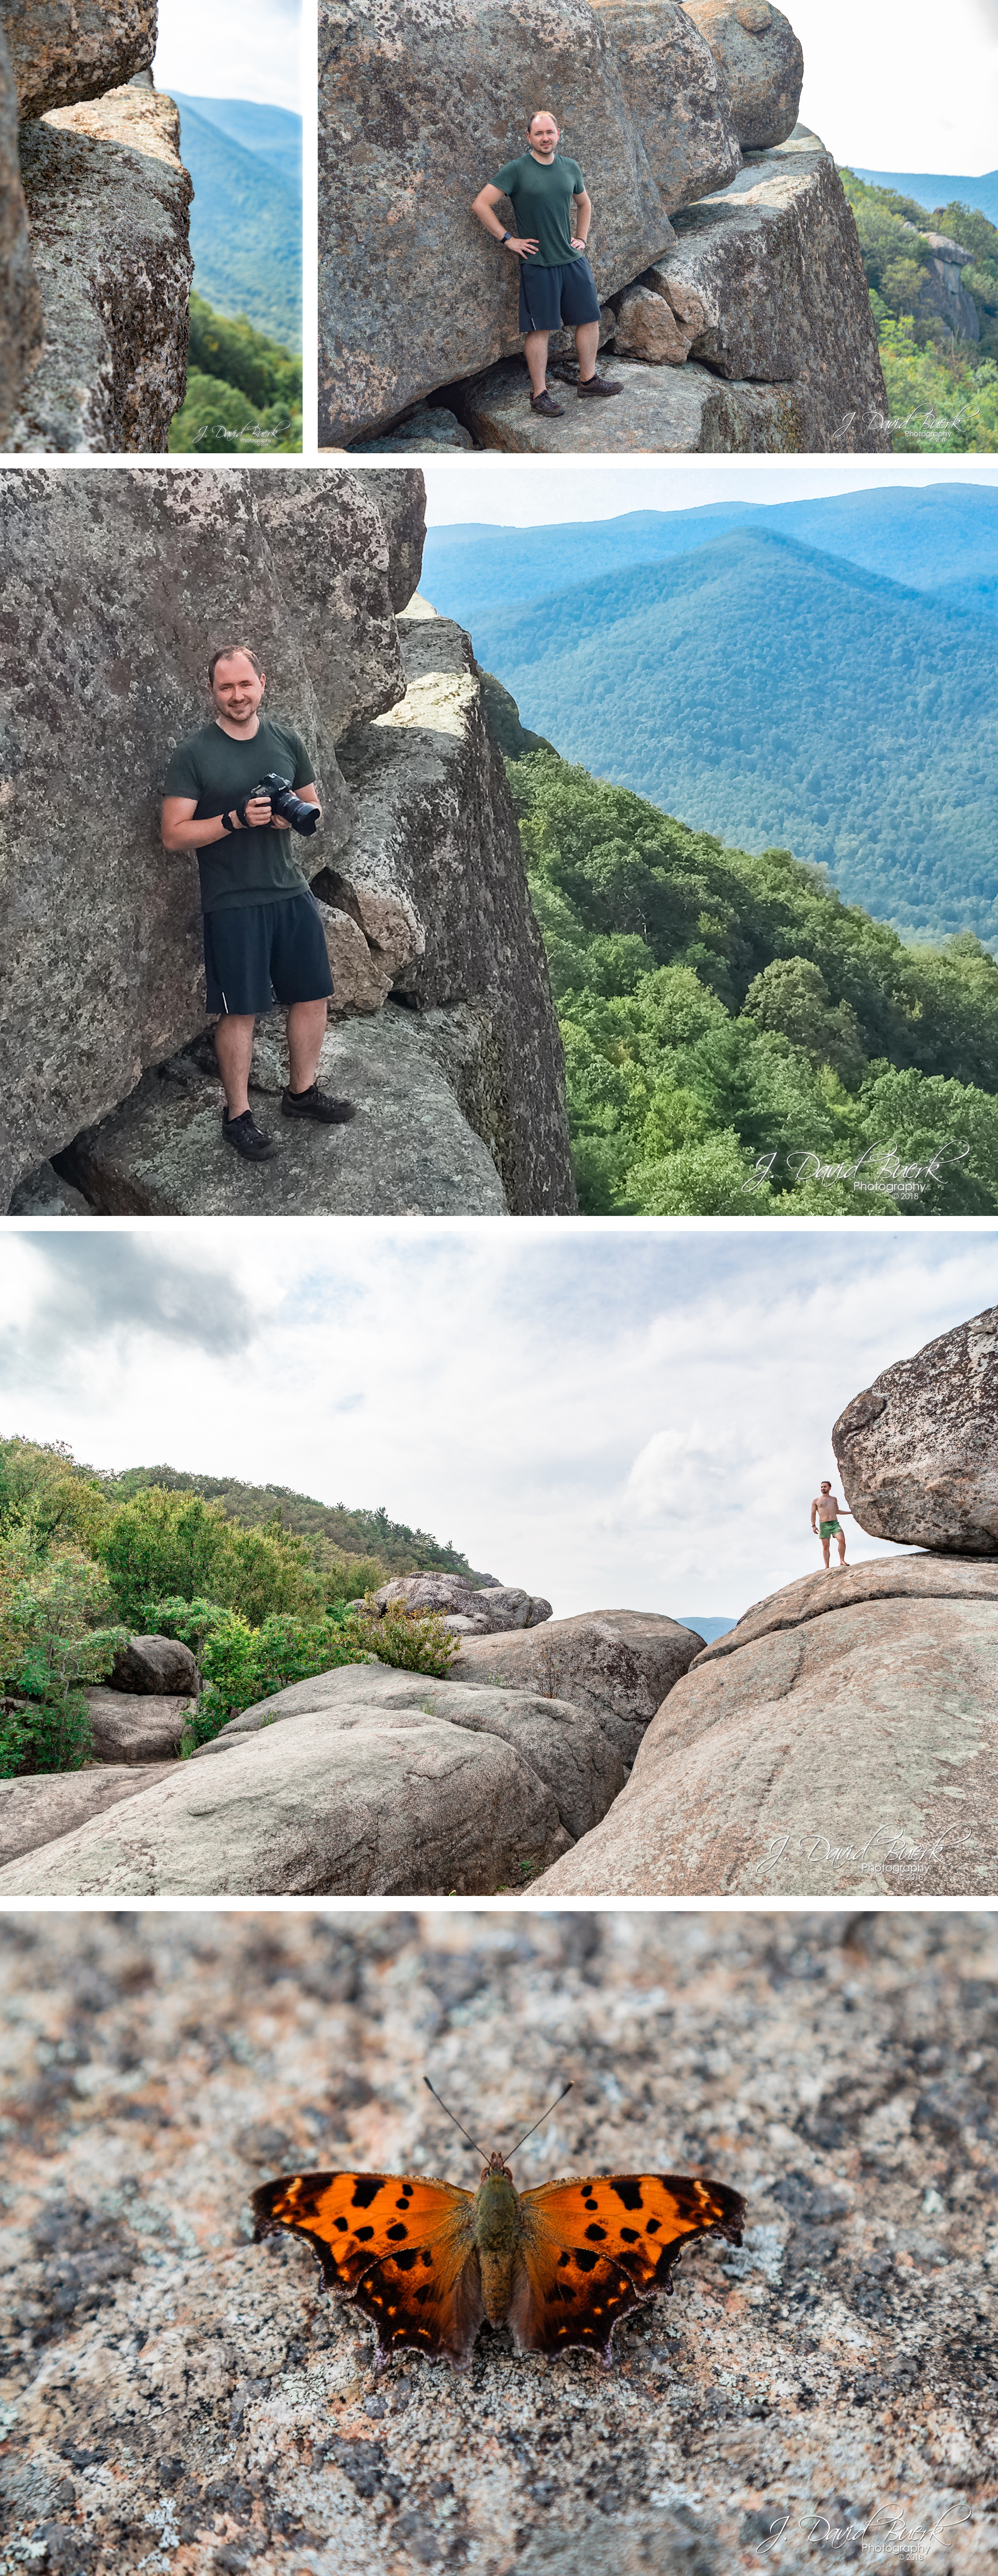 20180826 - Old Rag Mountain August 2018 9.jpg